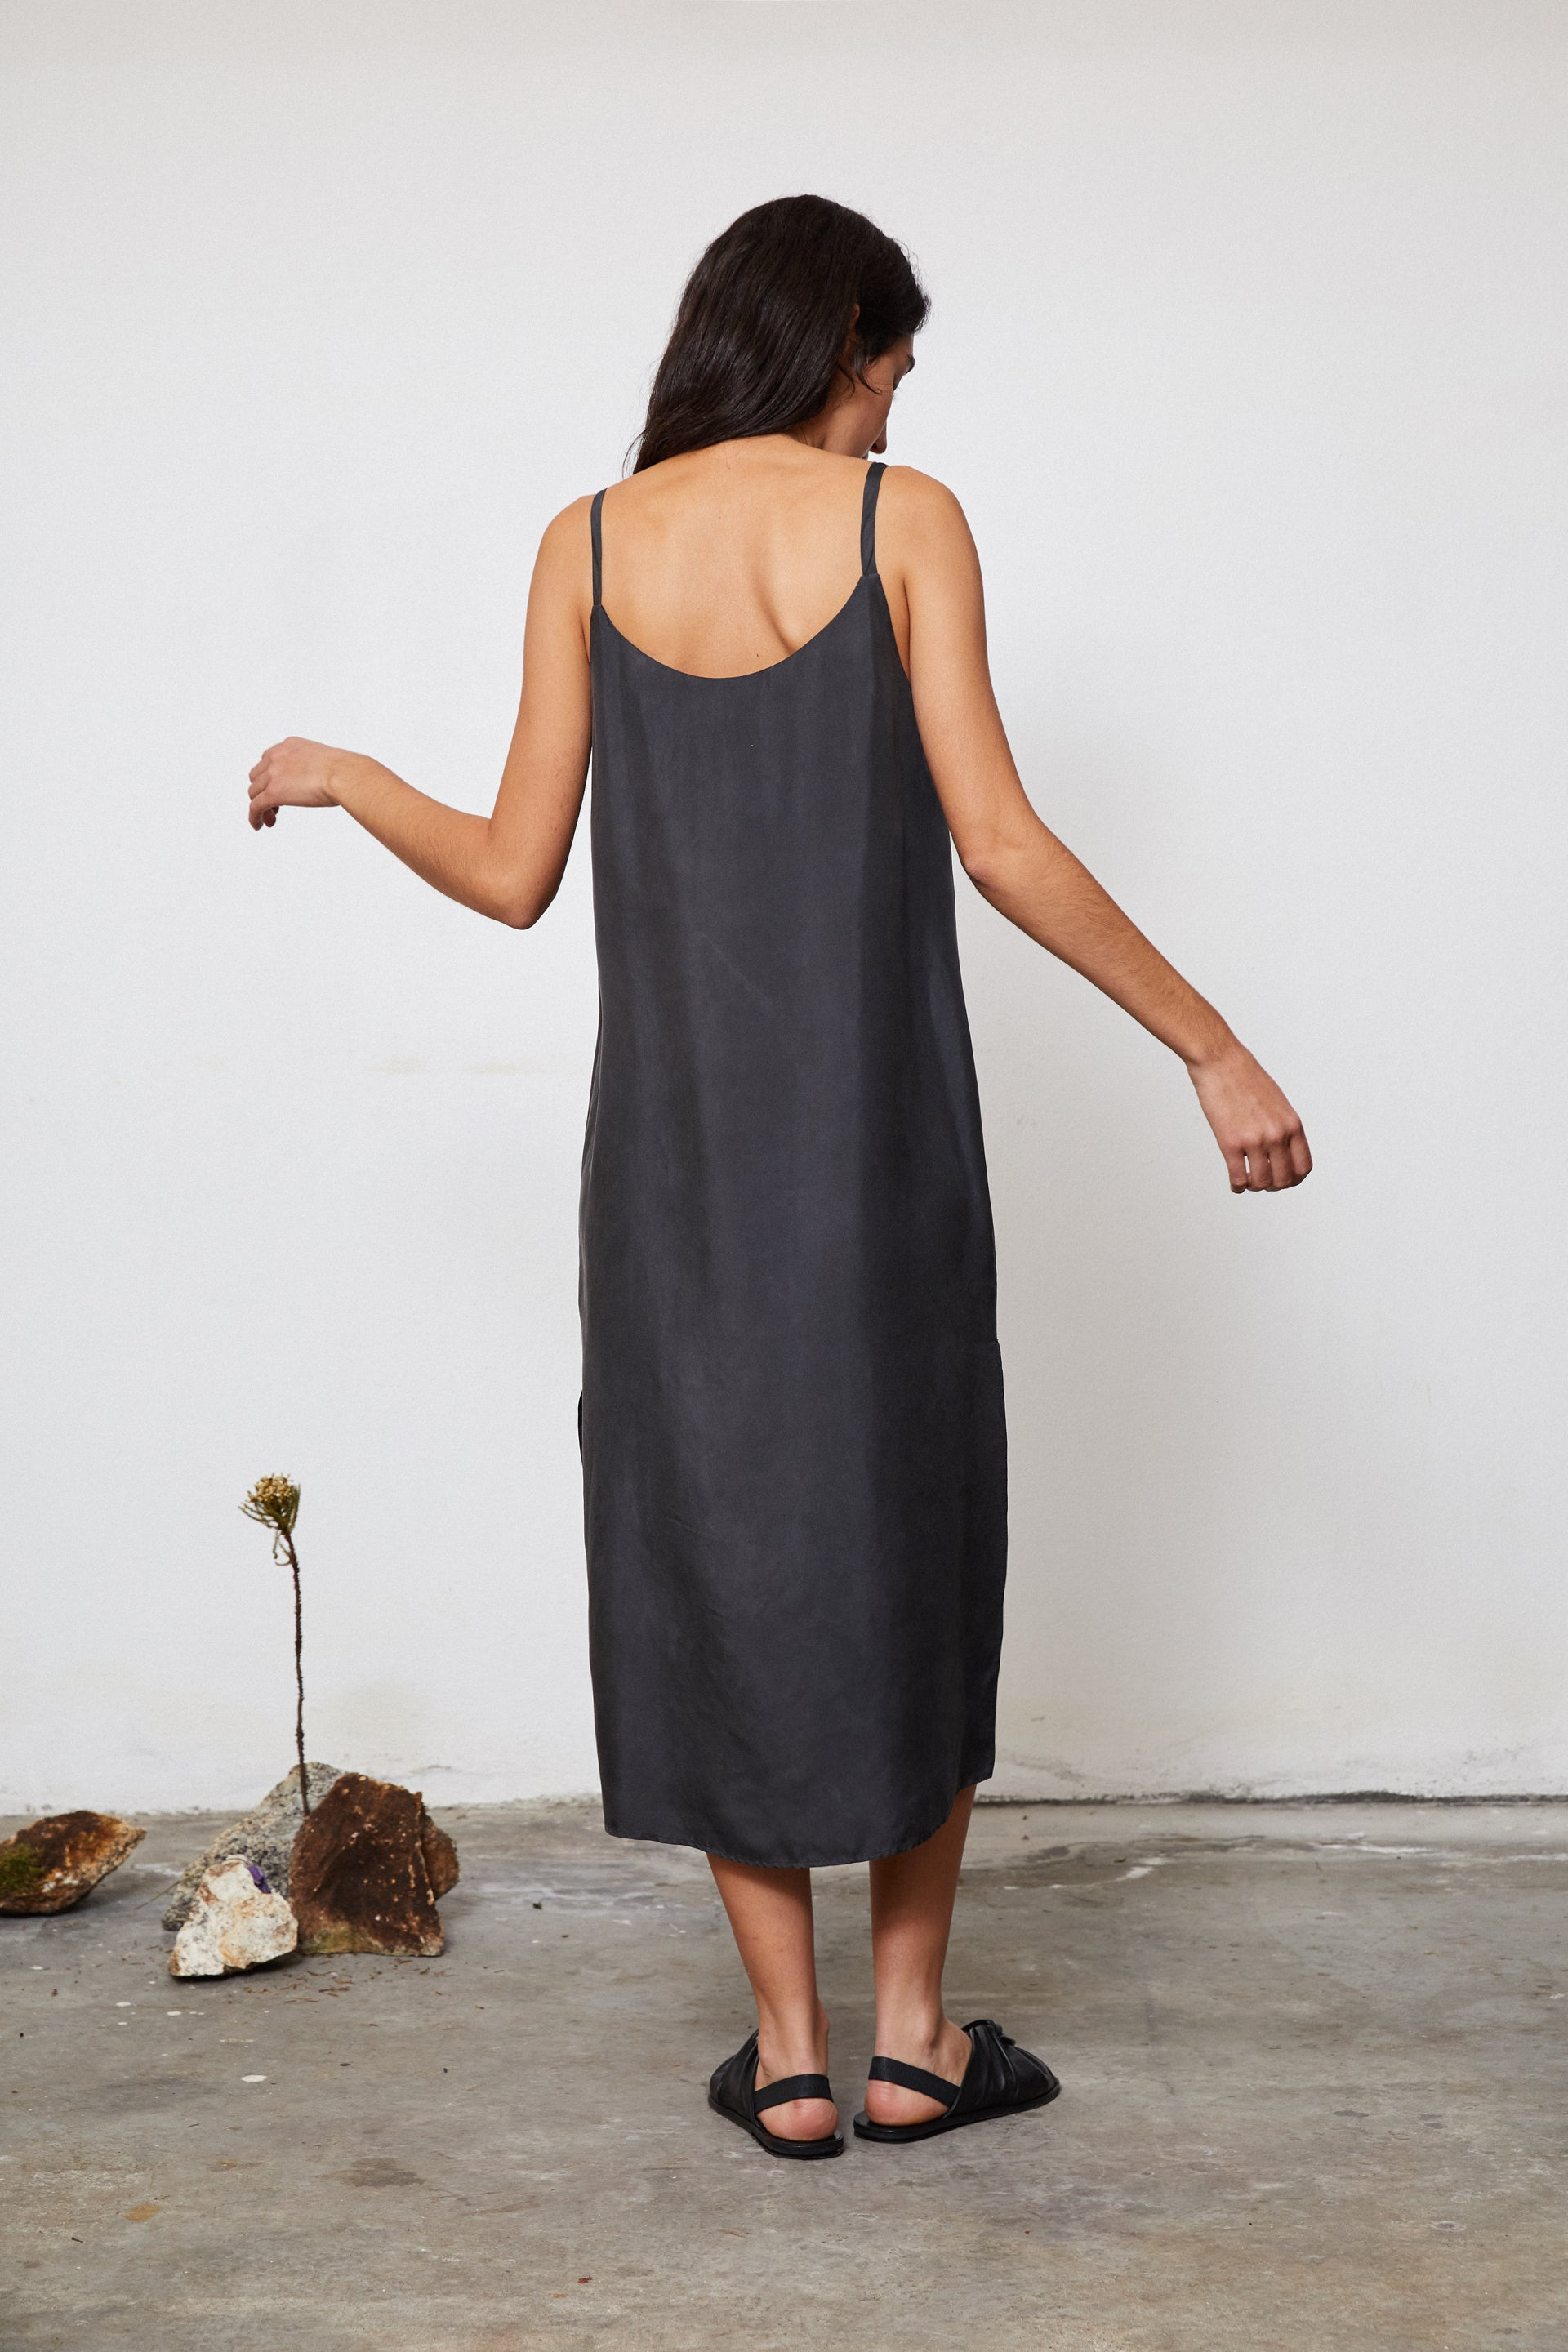 HAND DYED SILK SLIP DRESS - EUCALYPTUS ON IRON POT